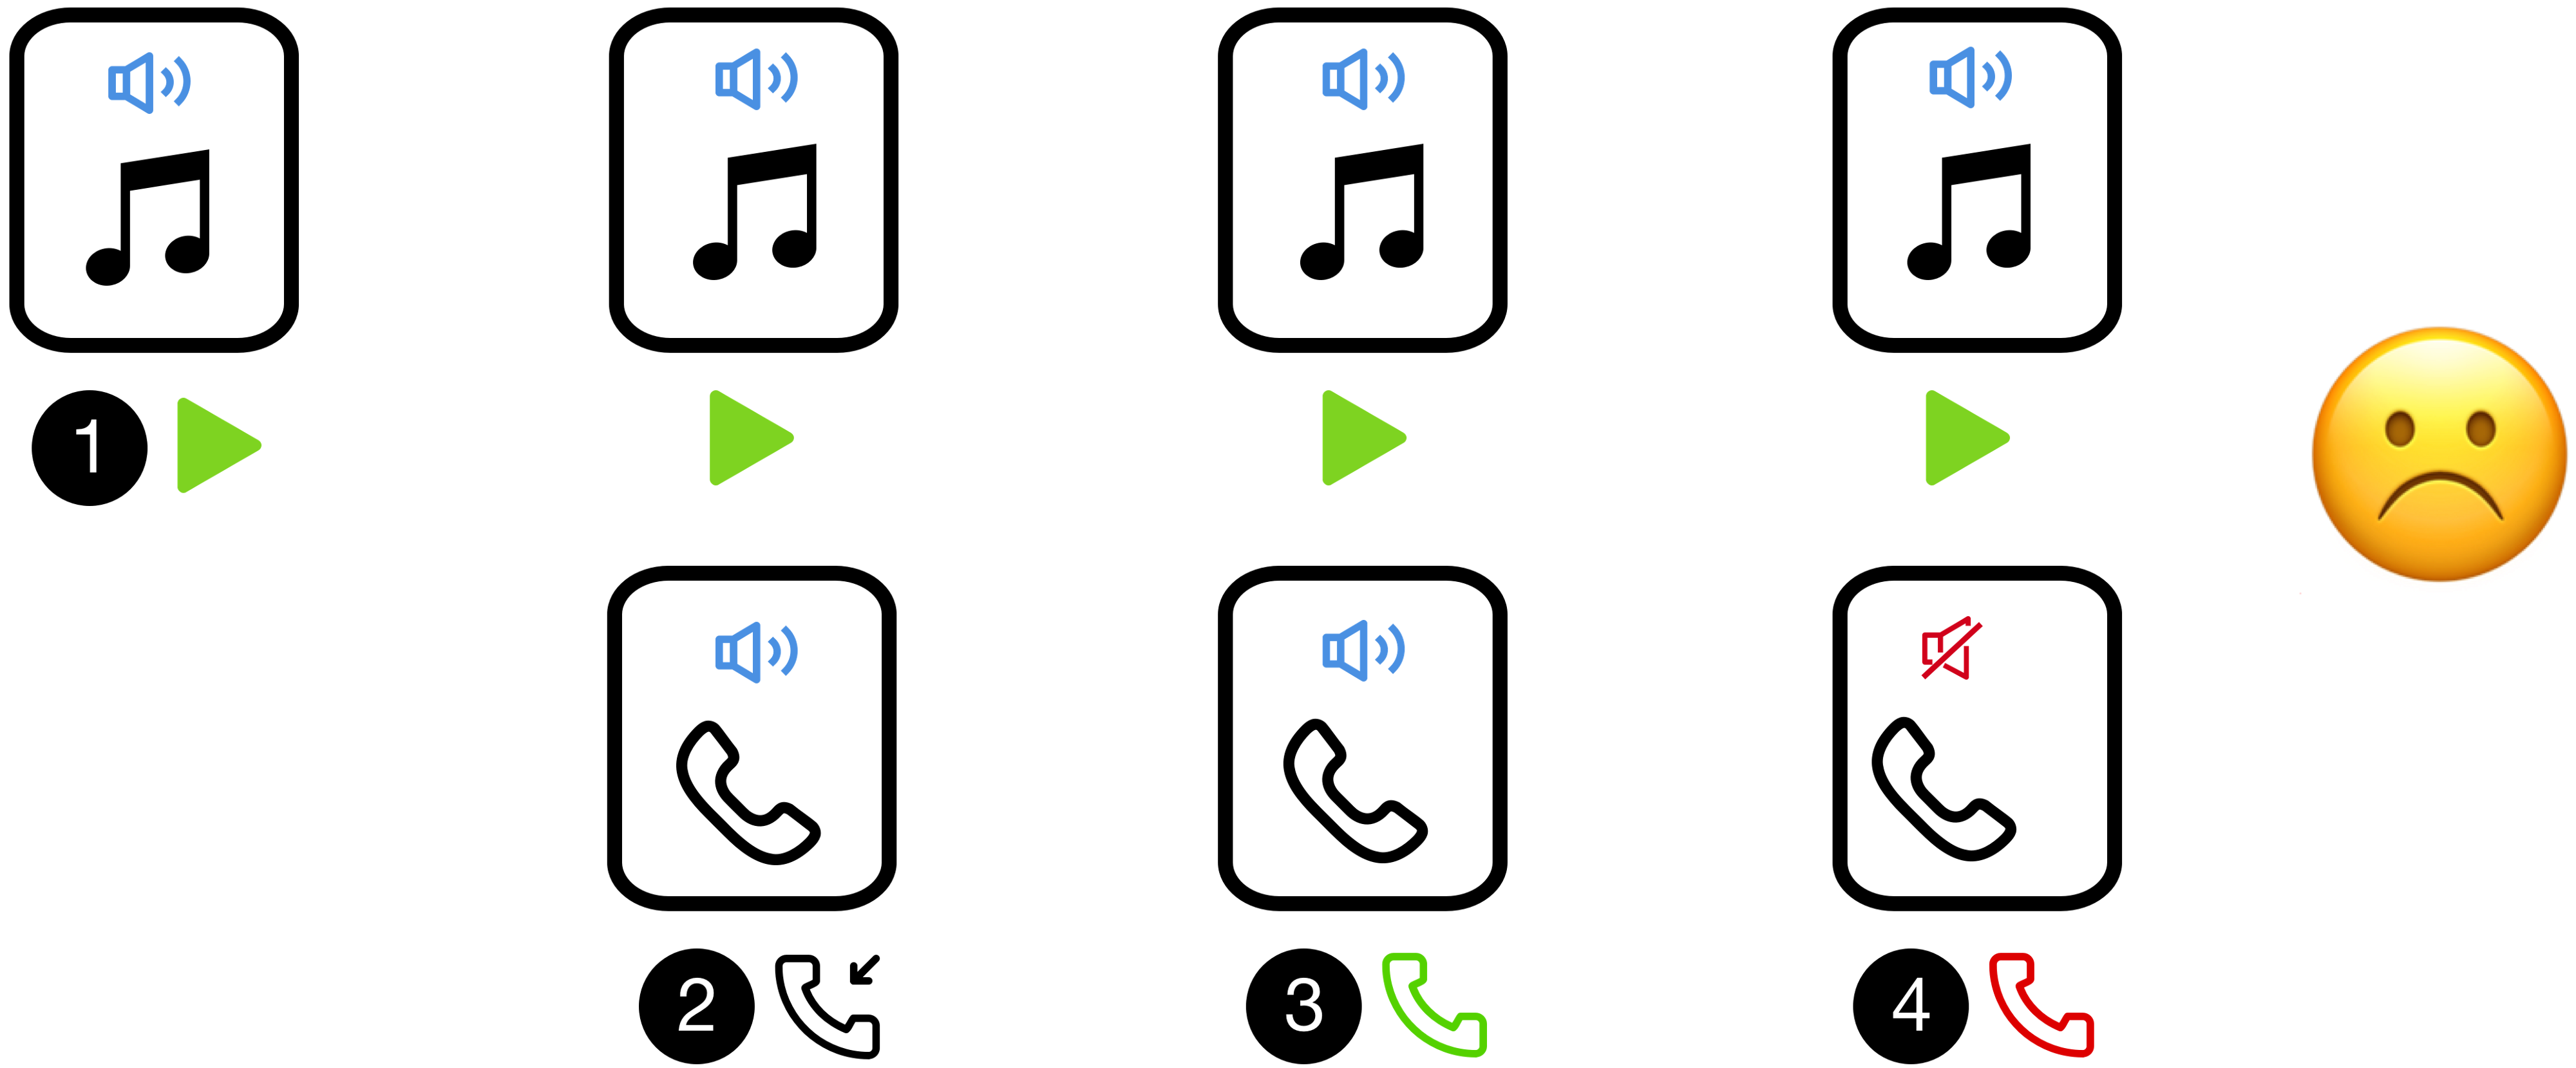 Understanding Audio Focus (Part 1 / 3) - Android Developers